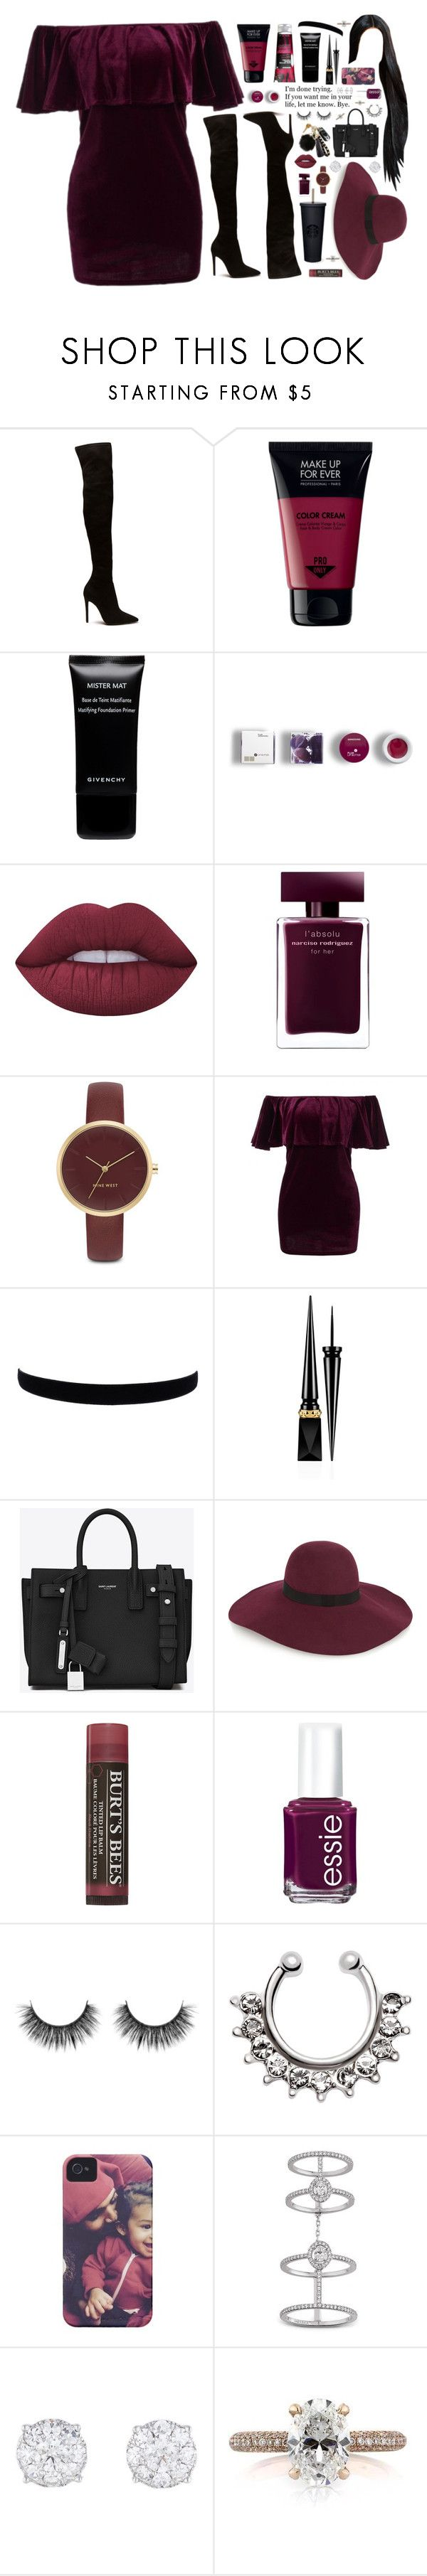 """""""done trying."""" by dyciana ❤ liked on Polyvore featuring Korres, Givenchy, Lime Crime, Narciso Rodriguez, Nine West, Christian Louboutin, Yves Saint Laurent, Maison Michel, Burt's Bees and Essie"""